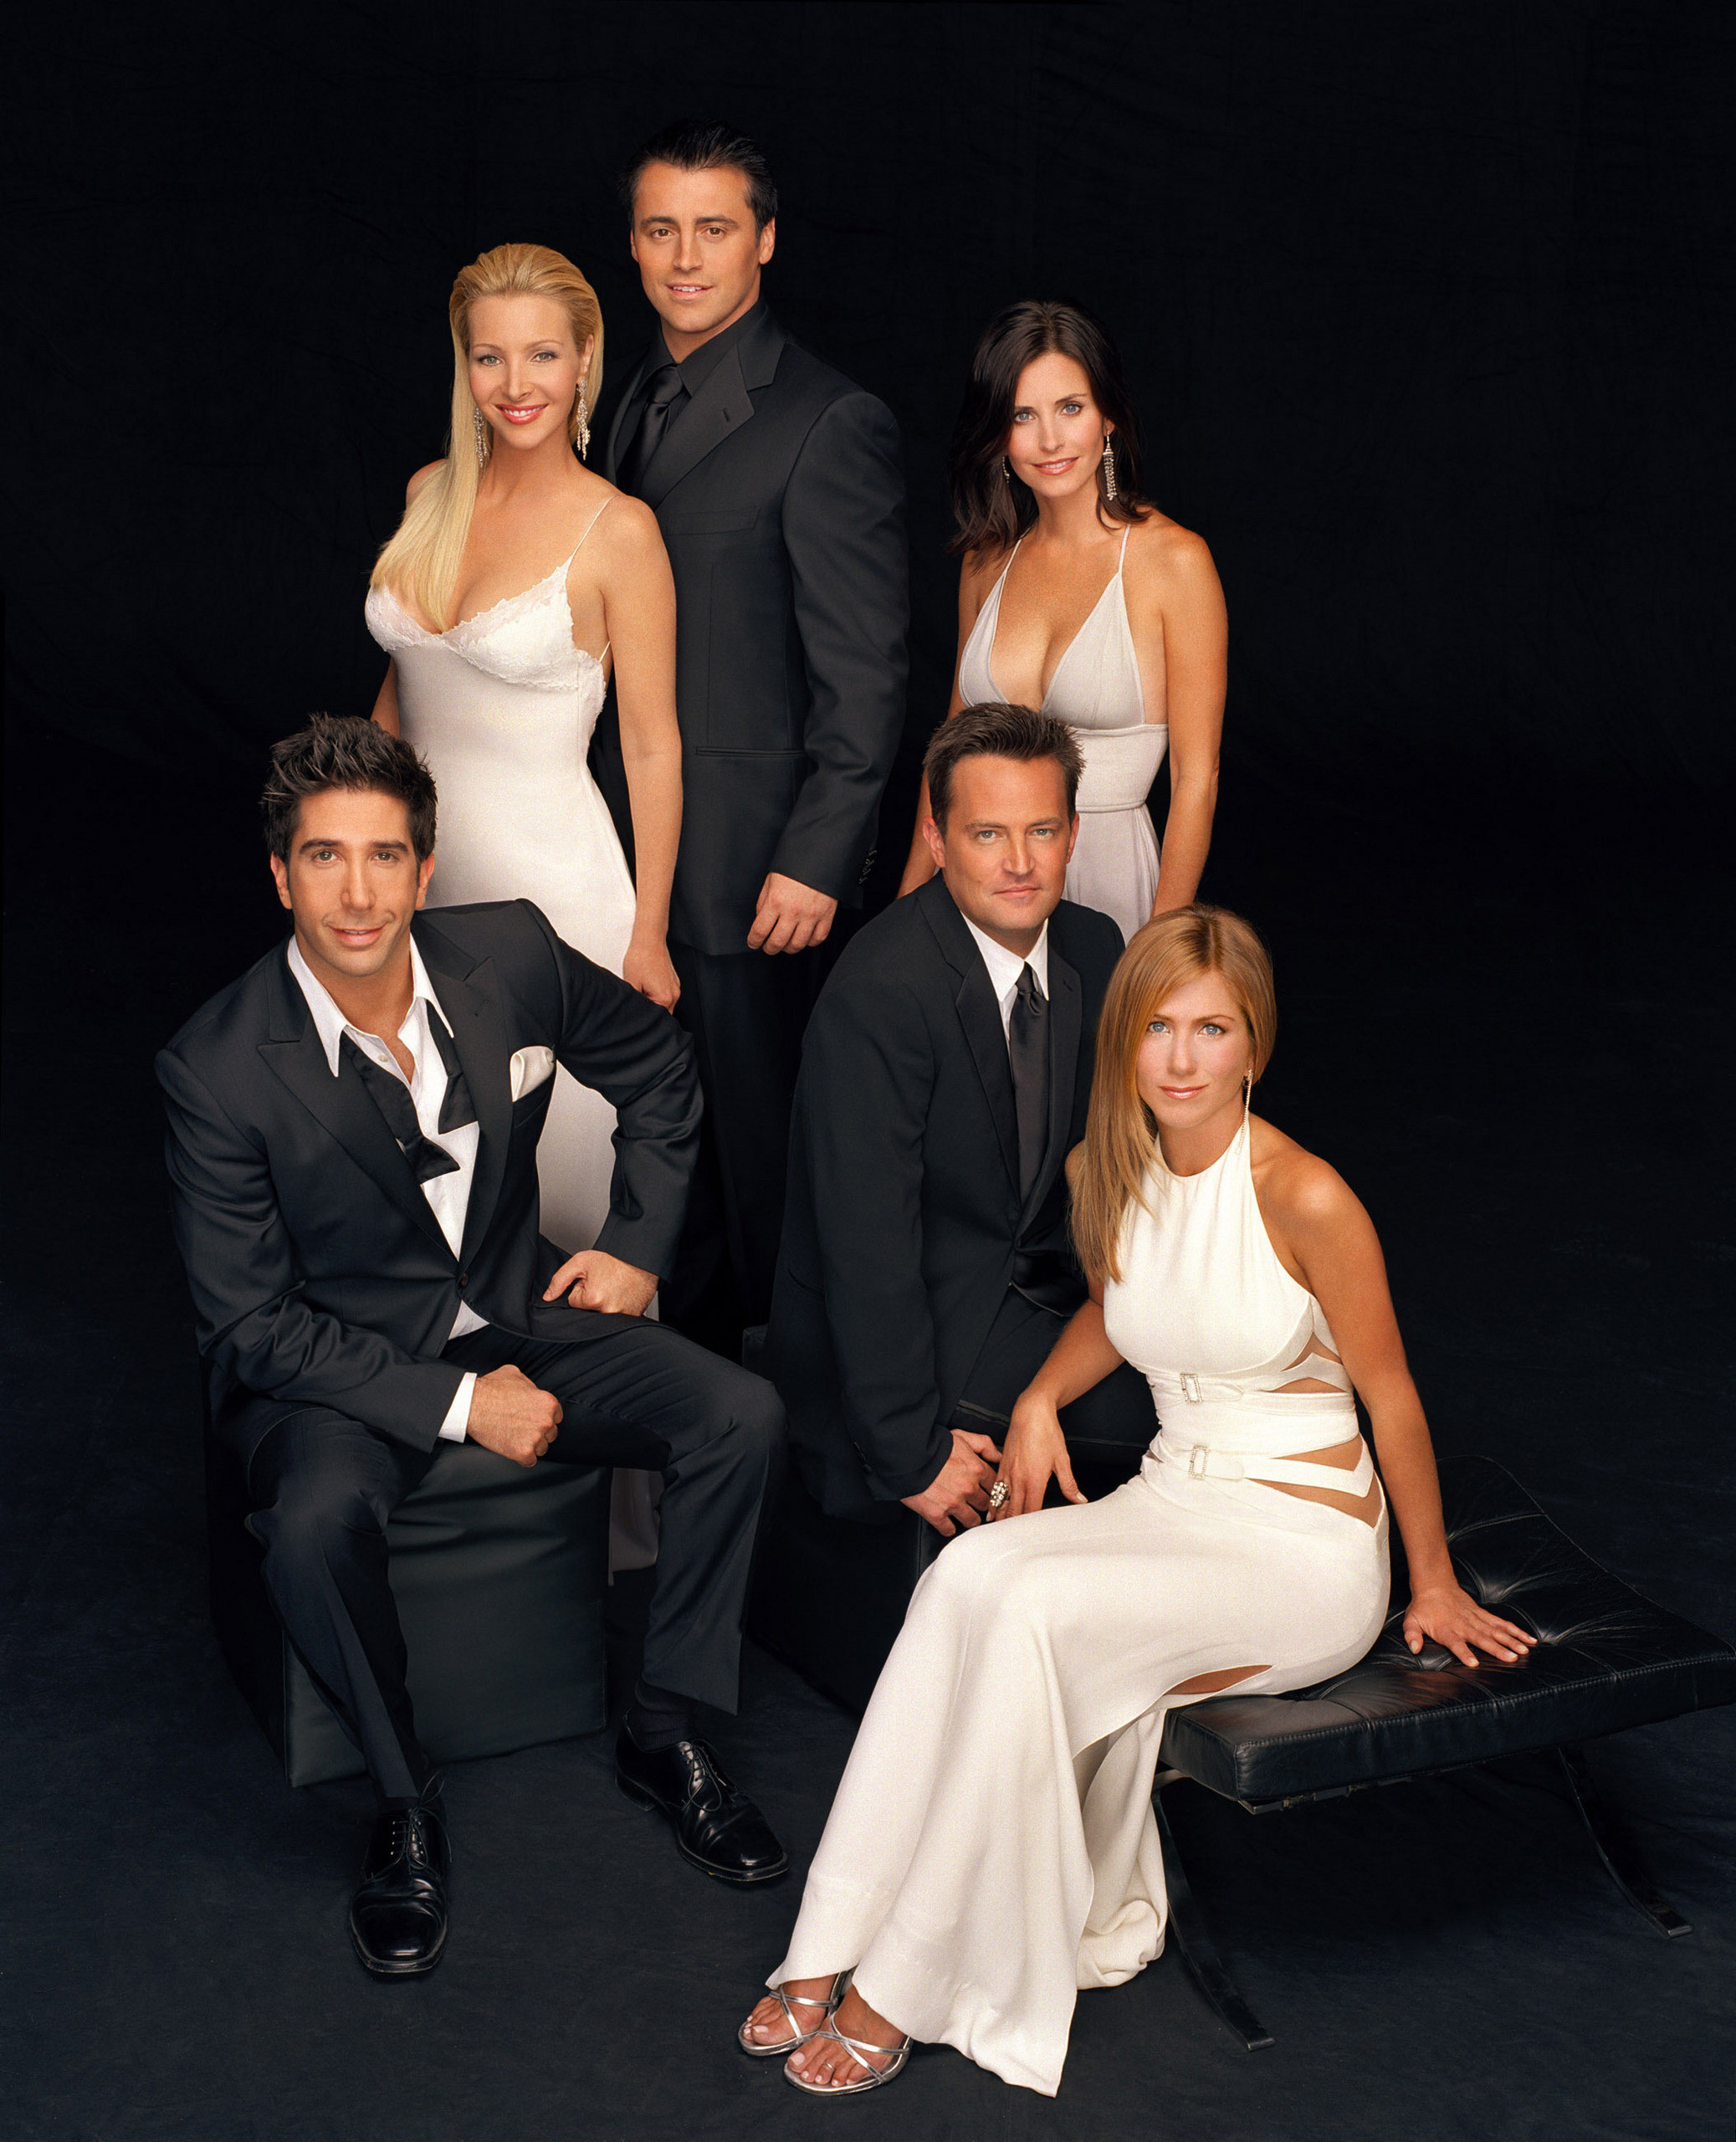 Friends TV Show Wallpapers (80+ Images